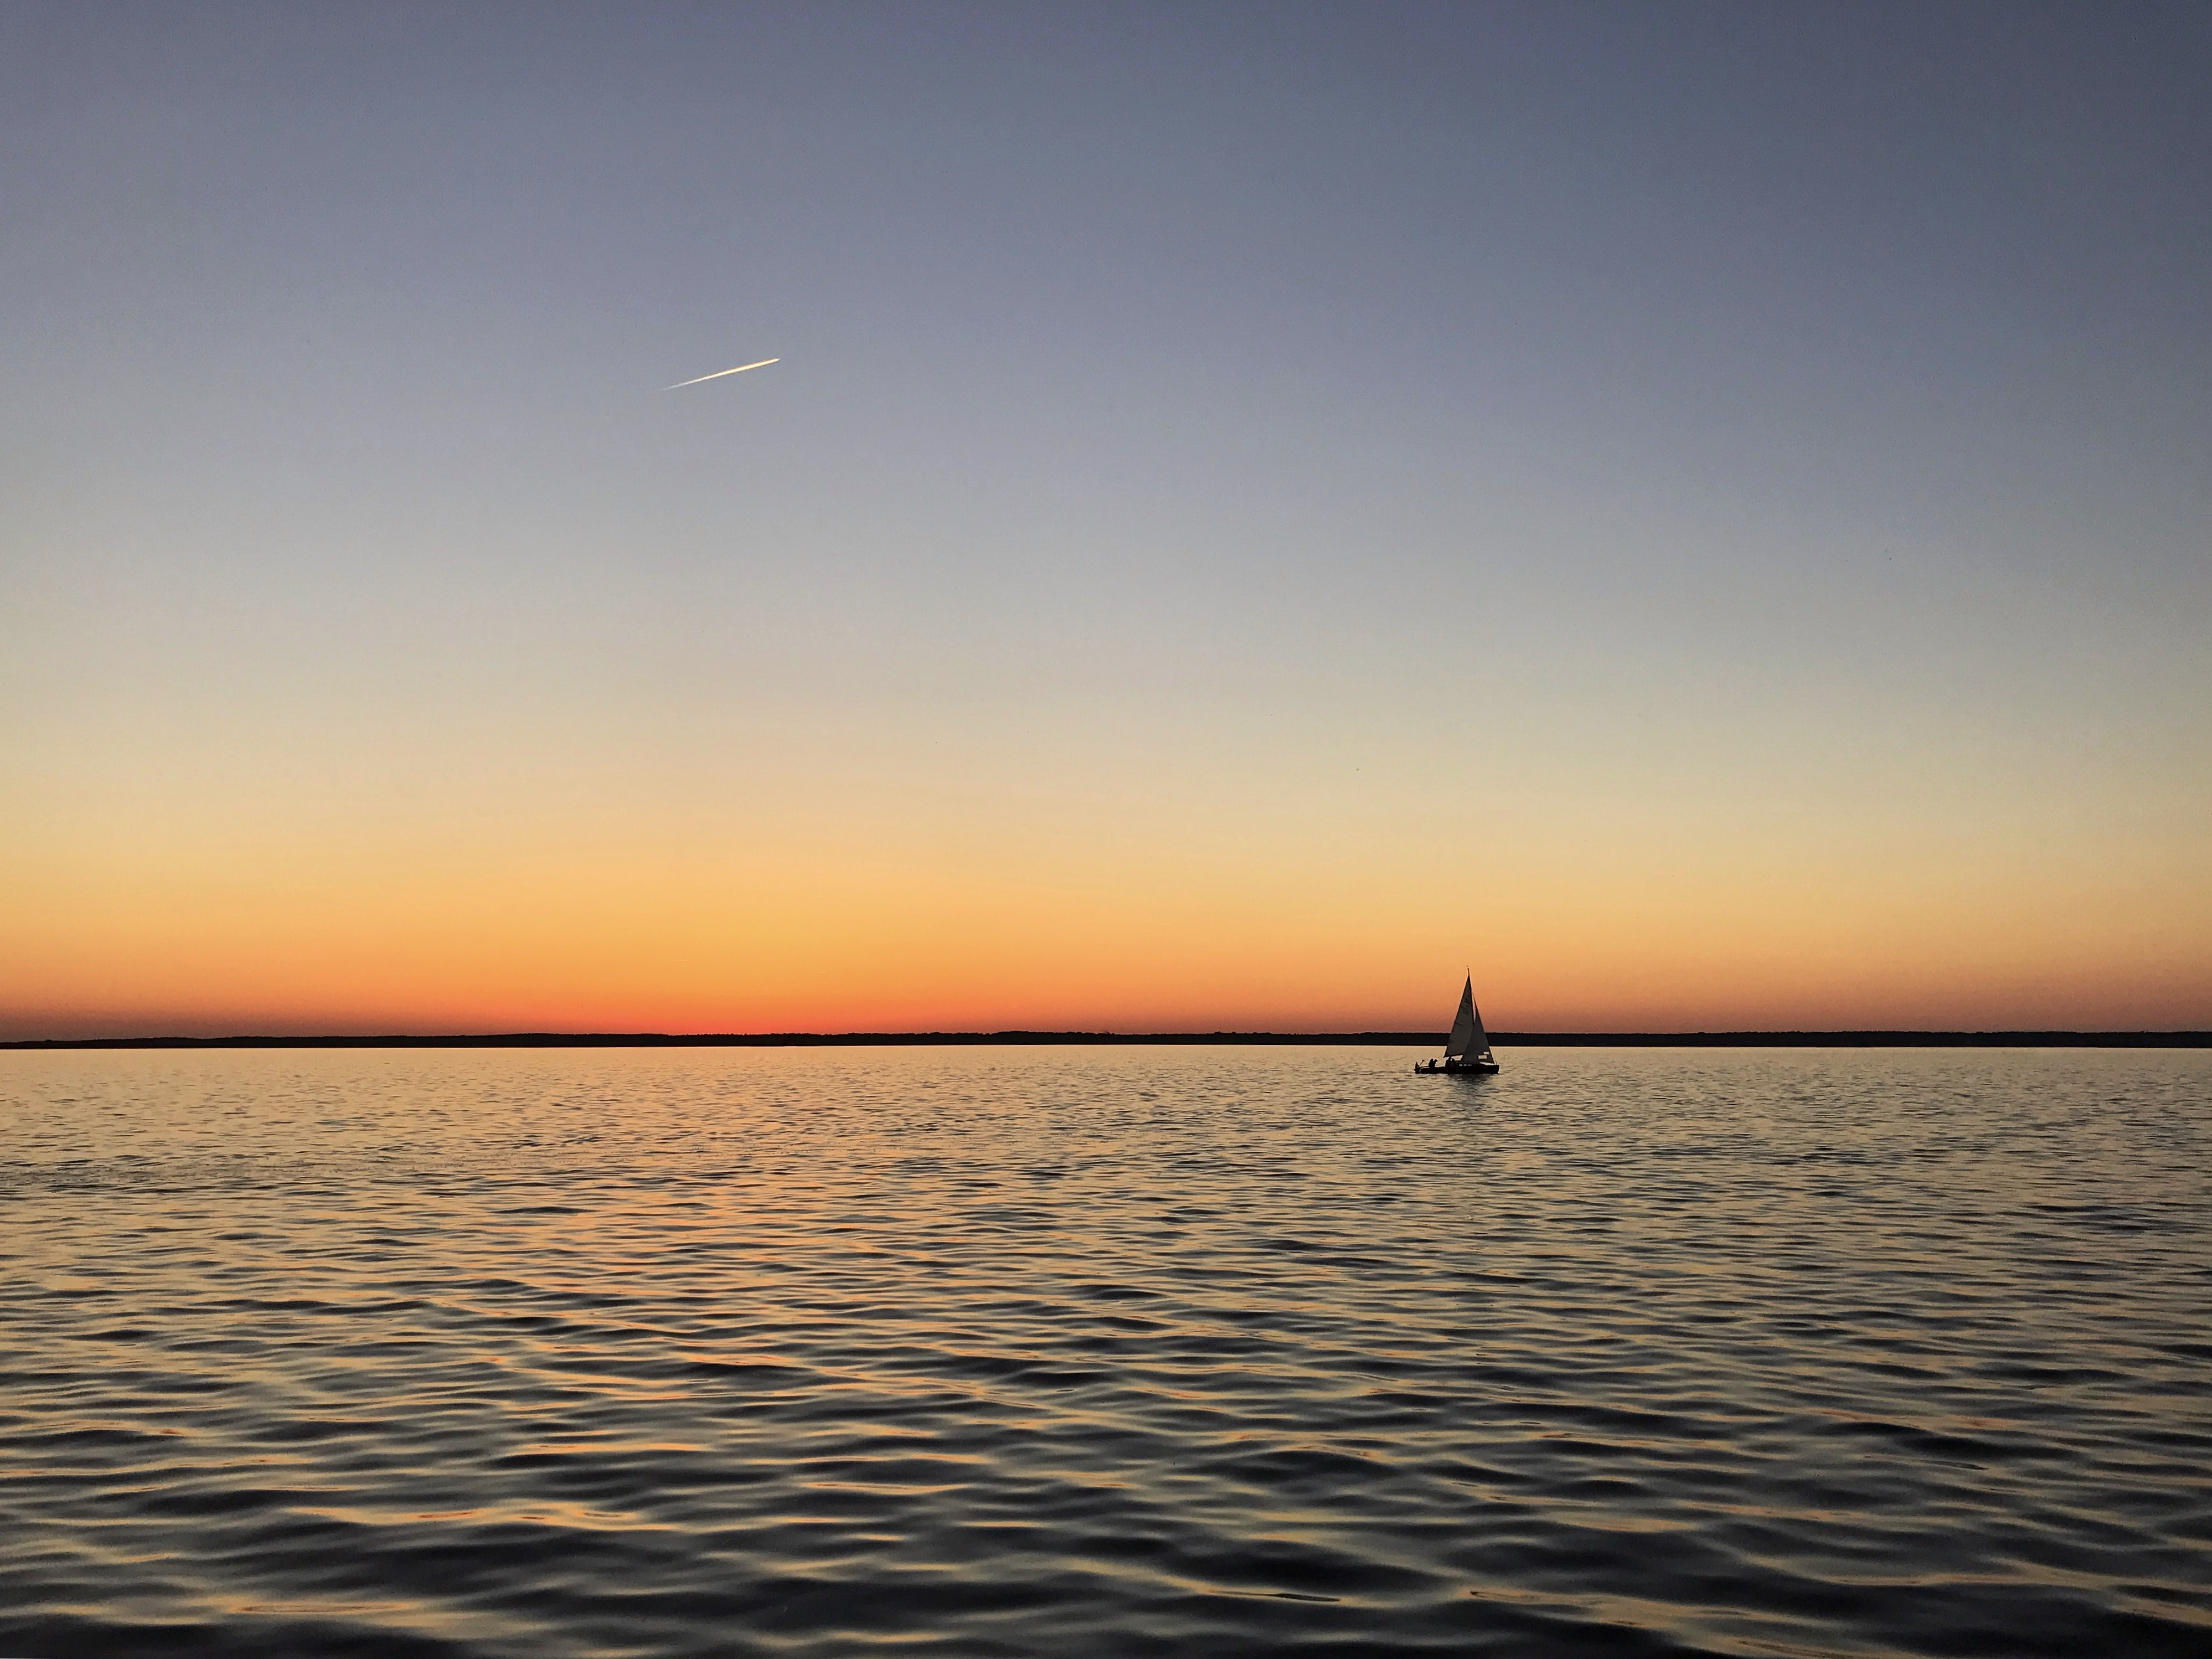 sail boat on calm body of water